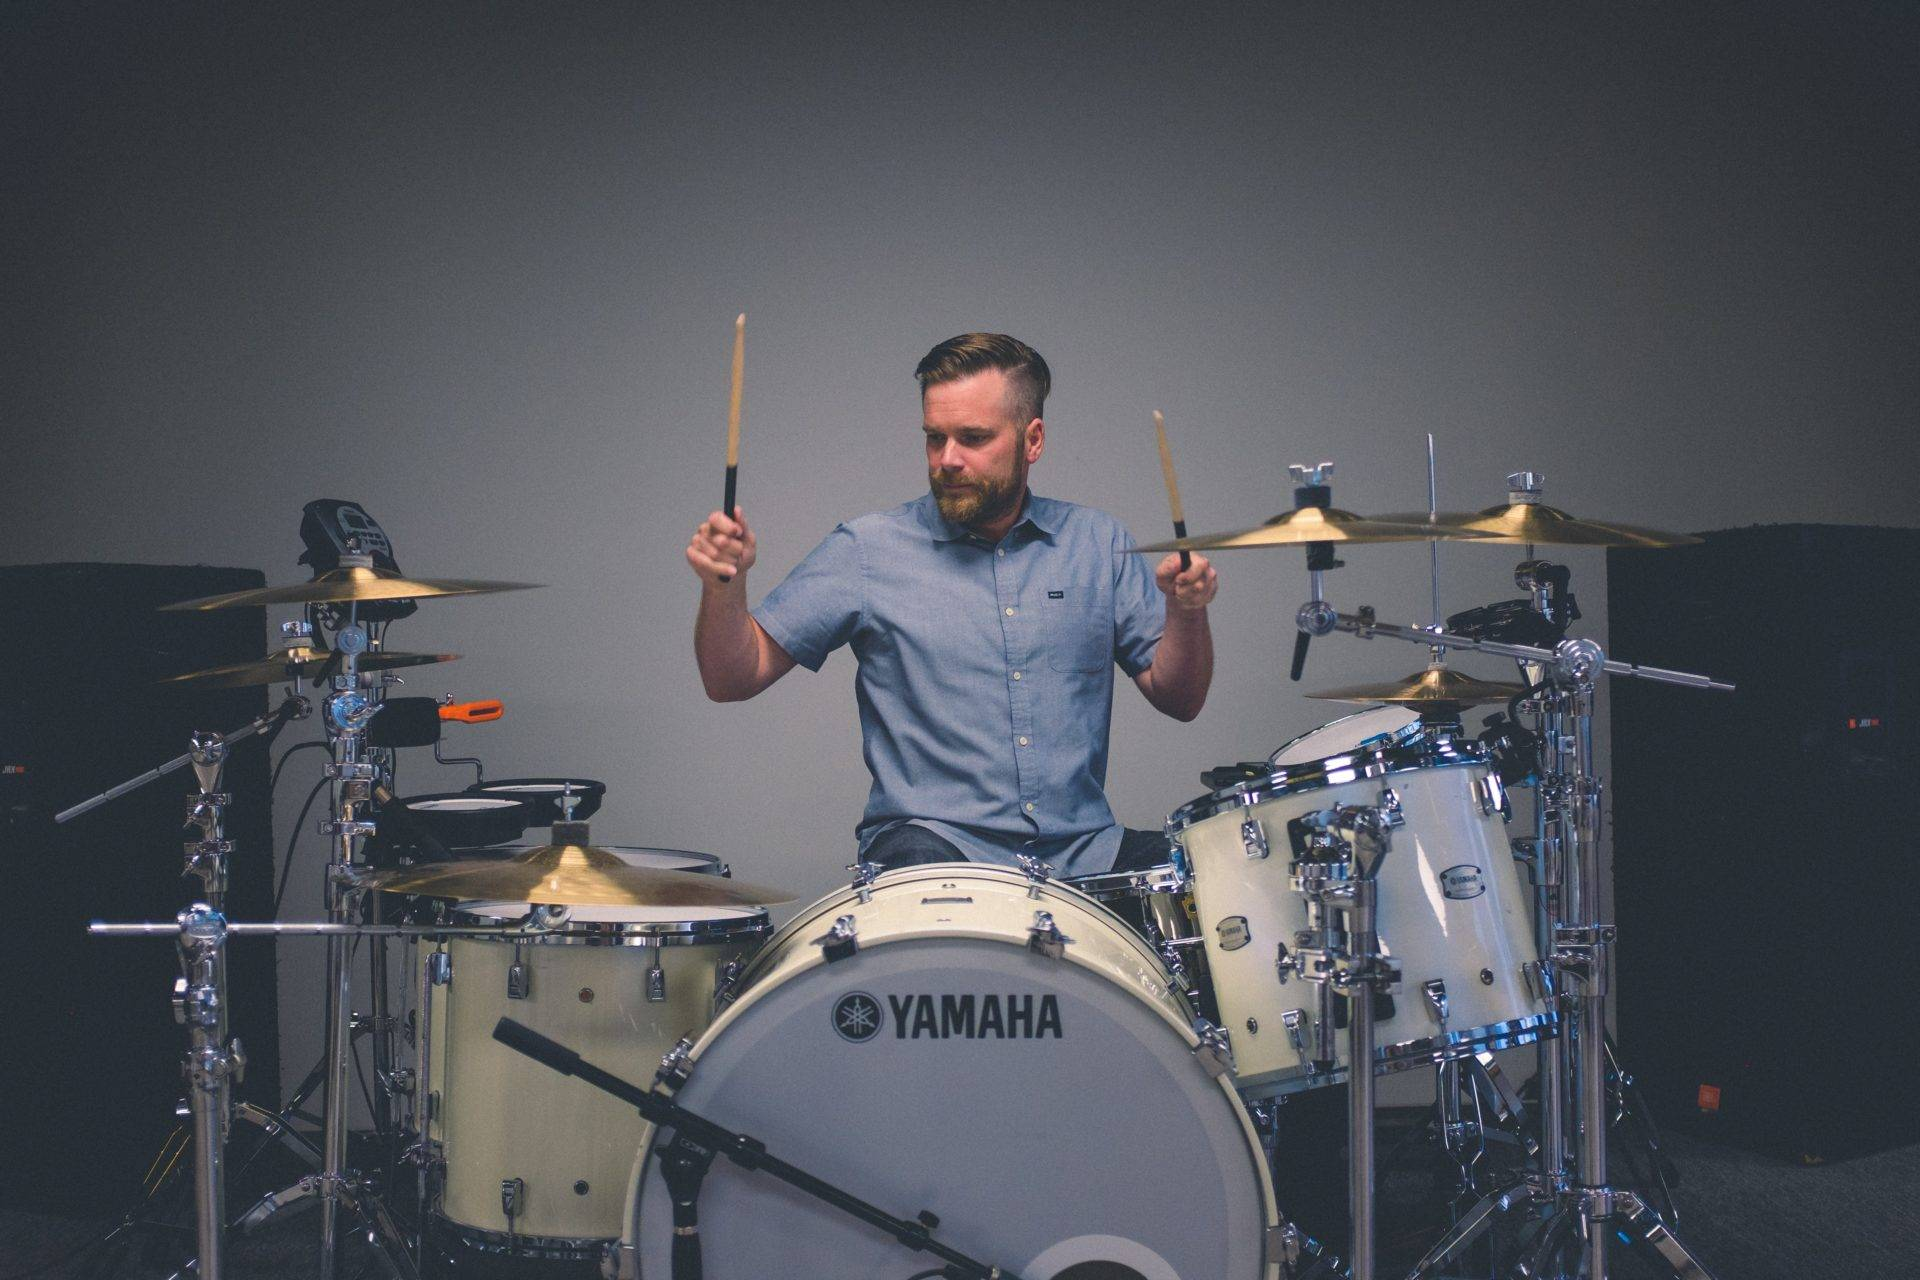 Best HiHats 2019 to Improve Your Drum Set Sound (Even On a